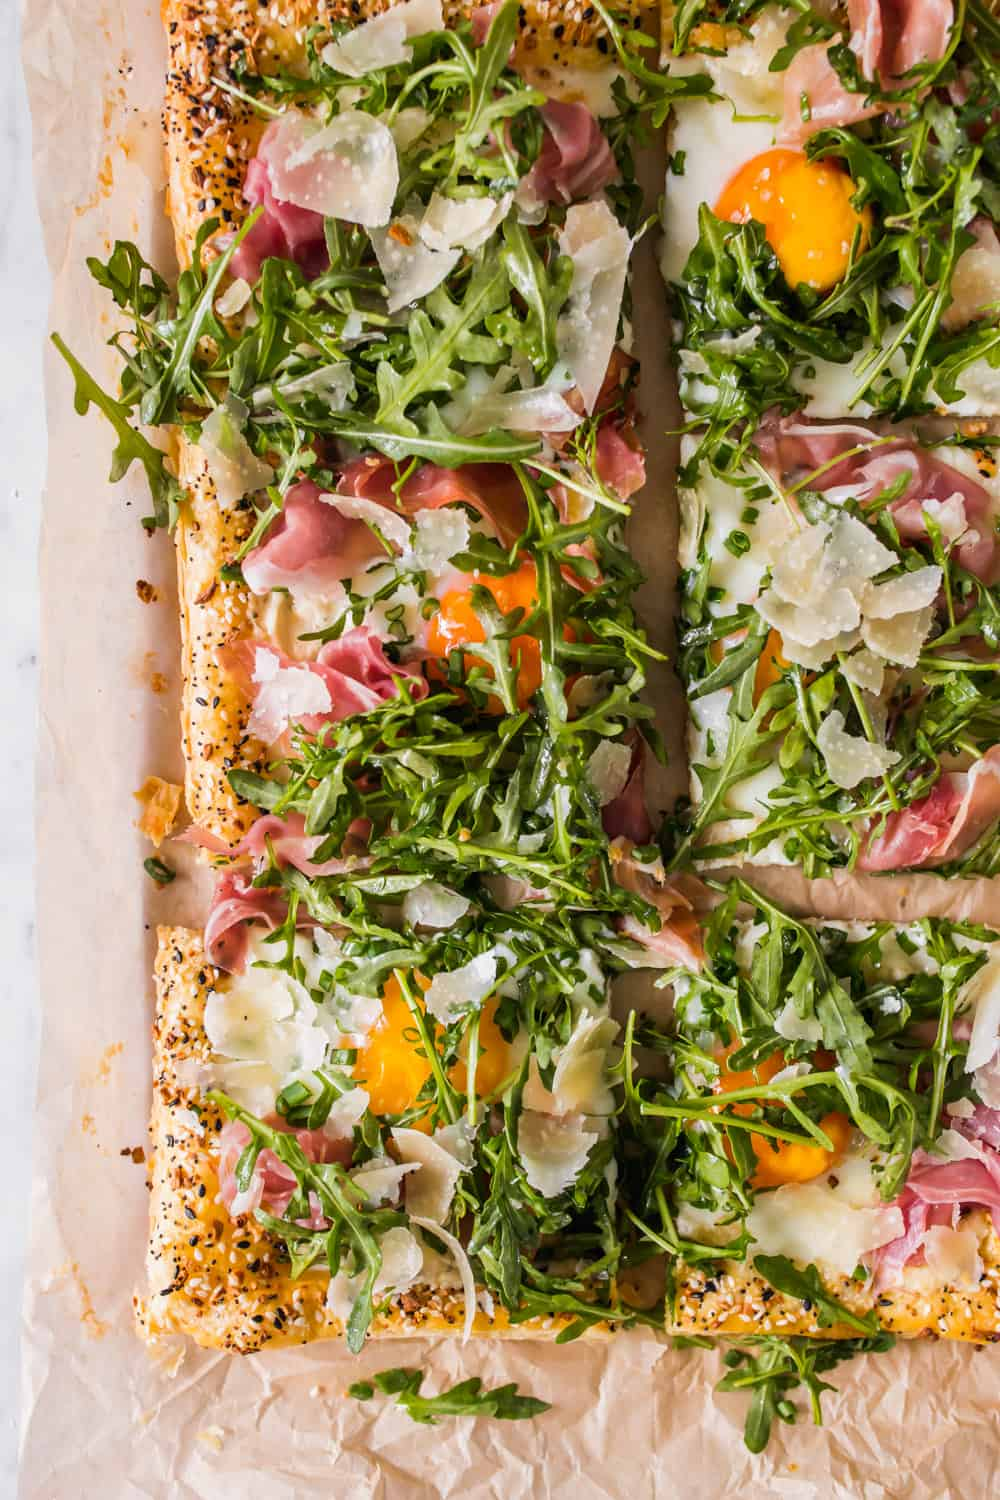 baked puff pastry tart on parchment paper topped with baked eggs, prosciutto, and arugula